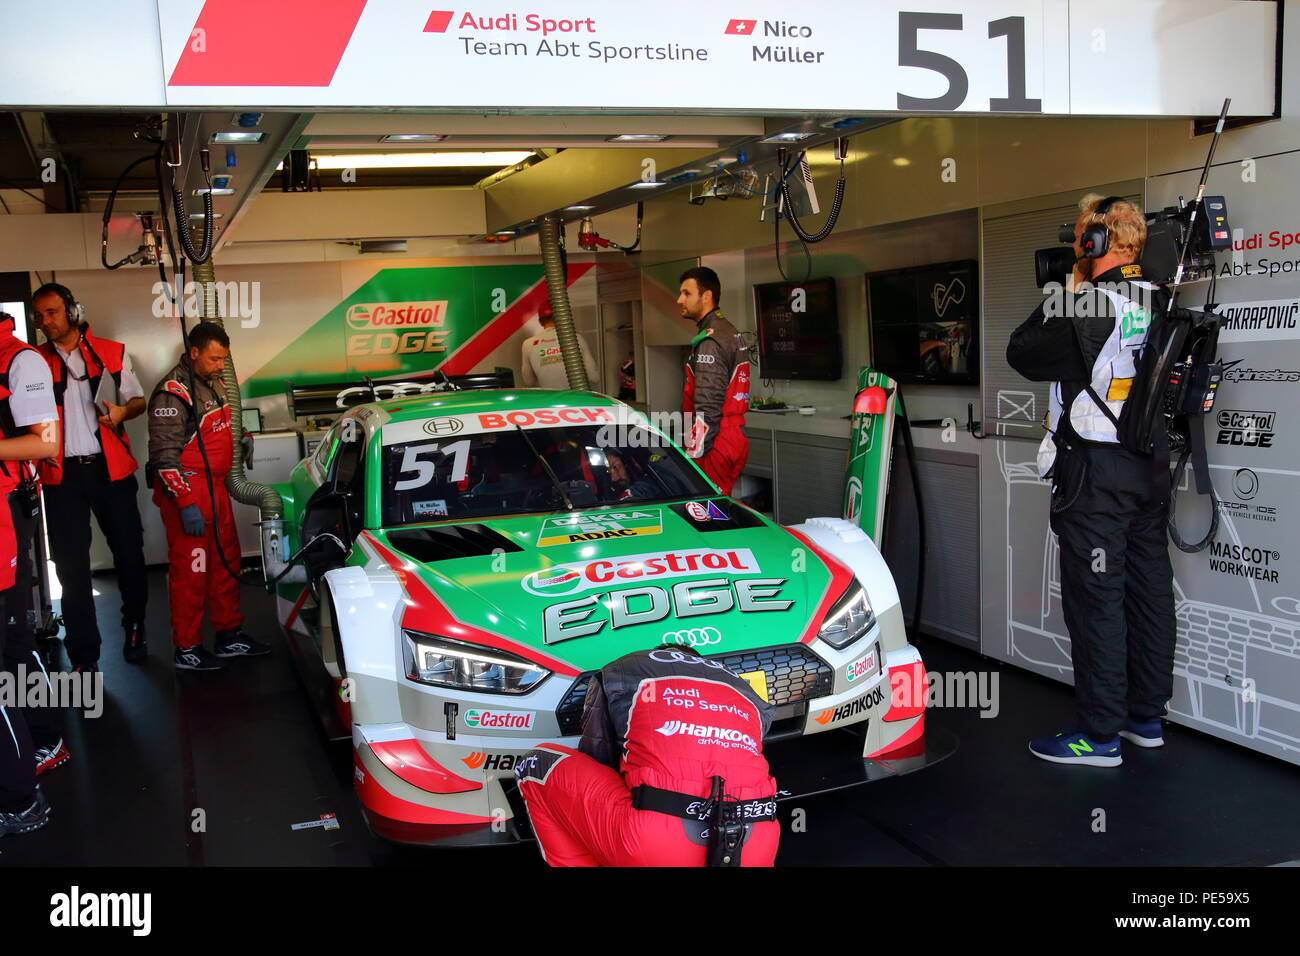 Mechanics preparing their car for the race at the DTM 2018 at Brands Hatch Circuit, Longfield, UK - Stock Image